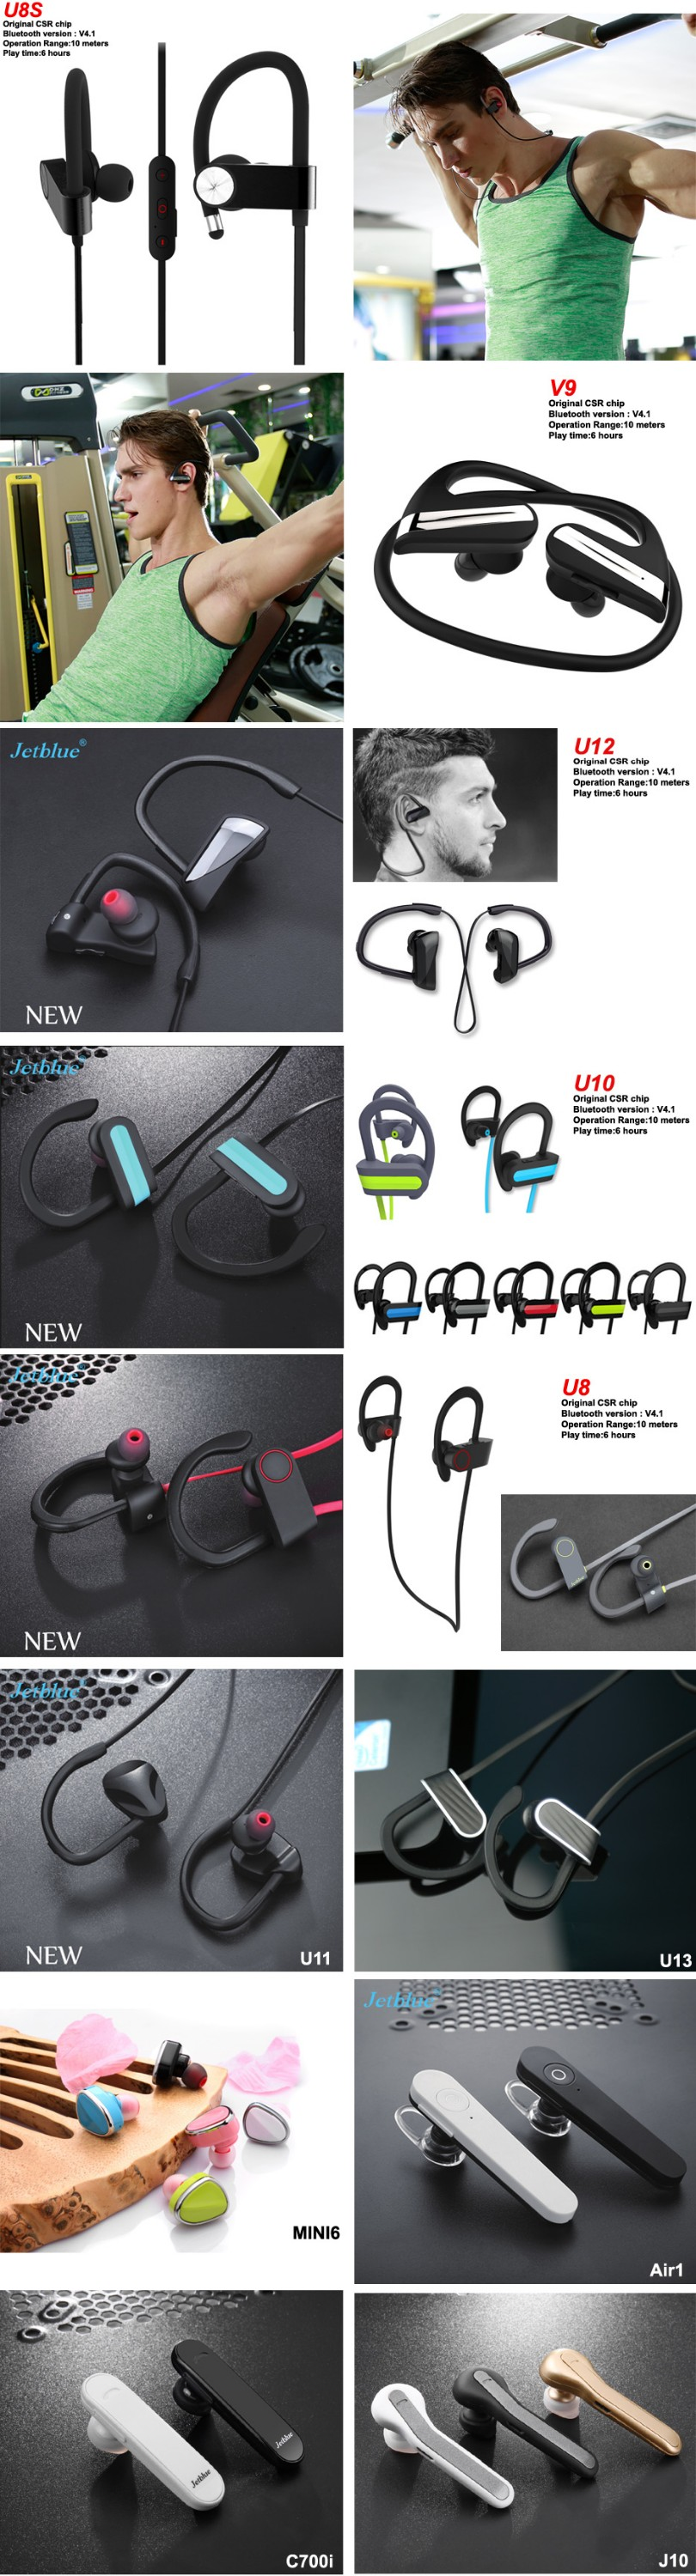 hot selling 2017 amazon bluetooth earpiece single wireless earphones bluetooth